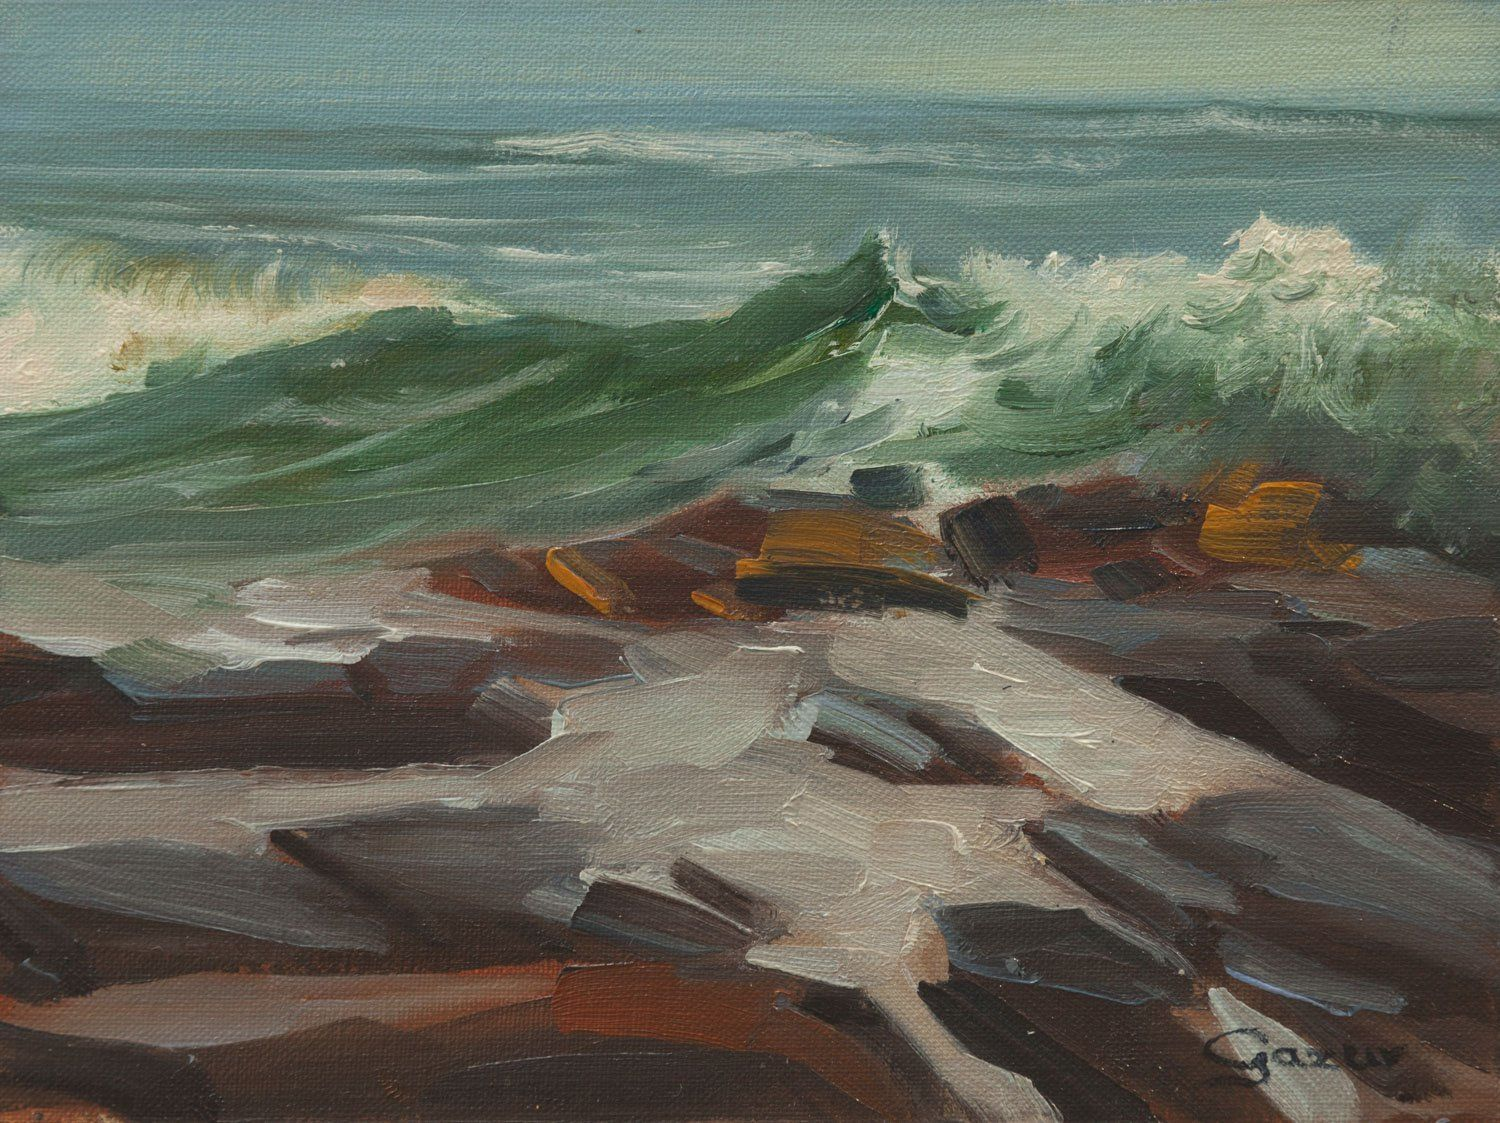 "Leffingwell Cove Wave in Cambria 6x8. 6"" x 8"" (15.2 cm x 20.3 cm) oil on linen, ocean painting of Leffingwell Cove Wave, near Moonstone Beach in Cambria, California."